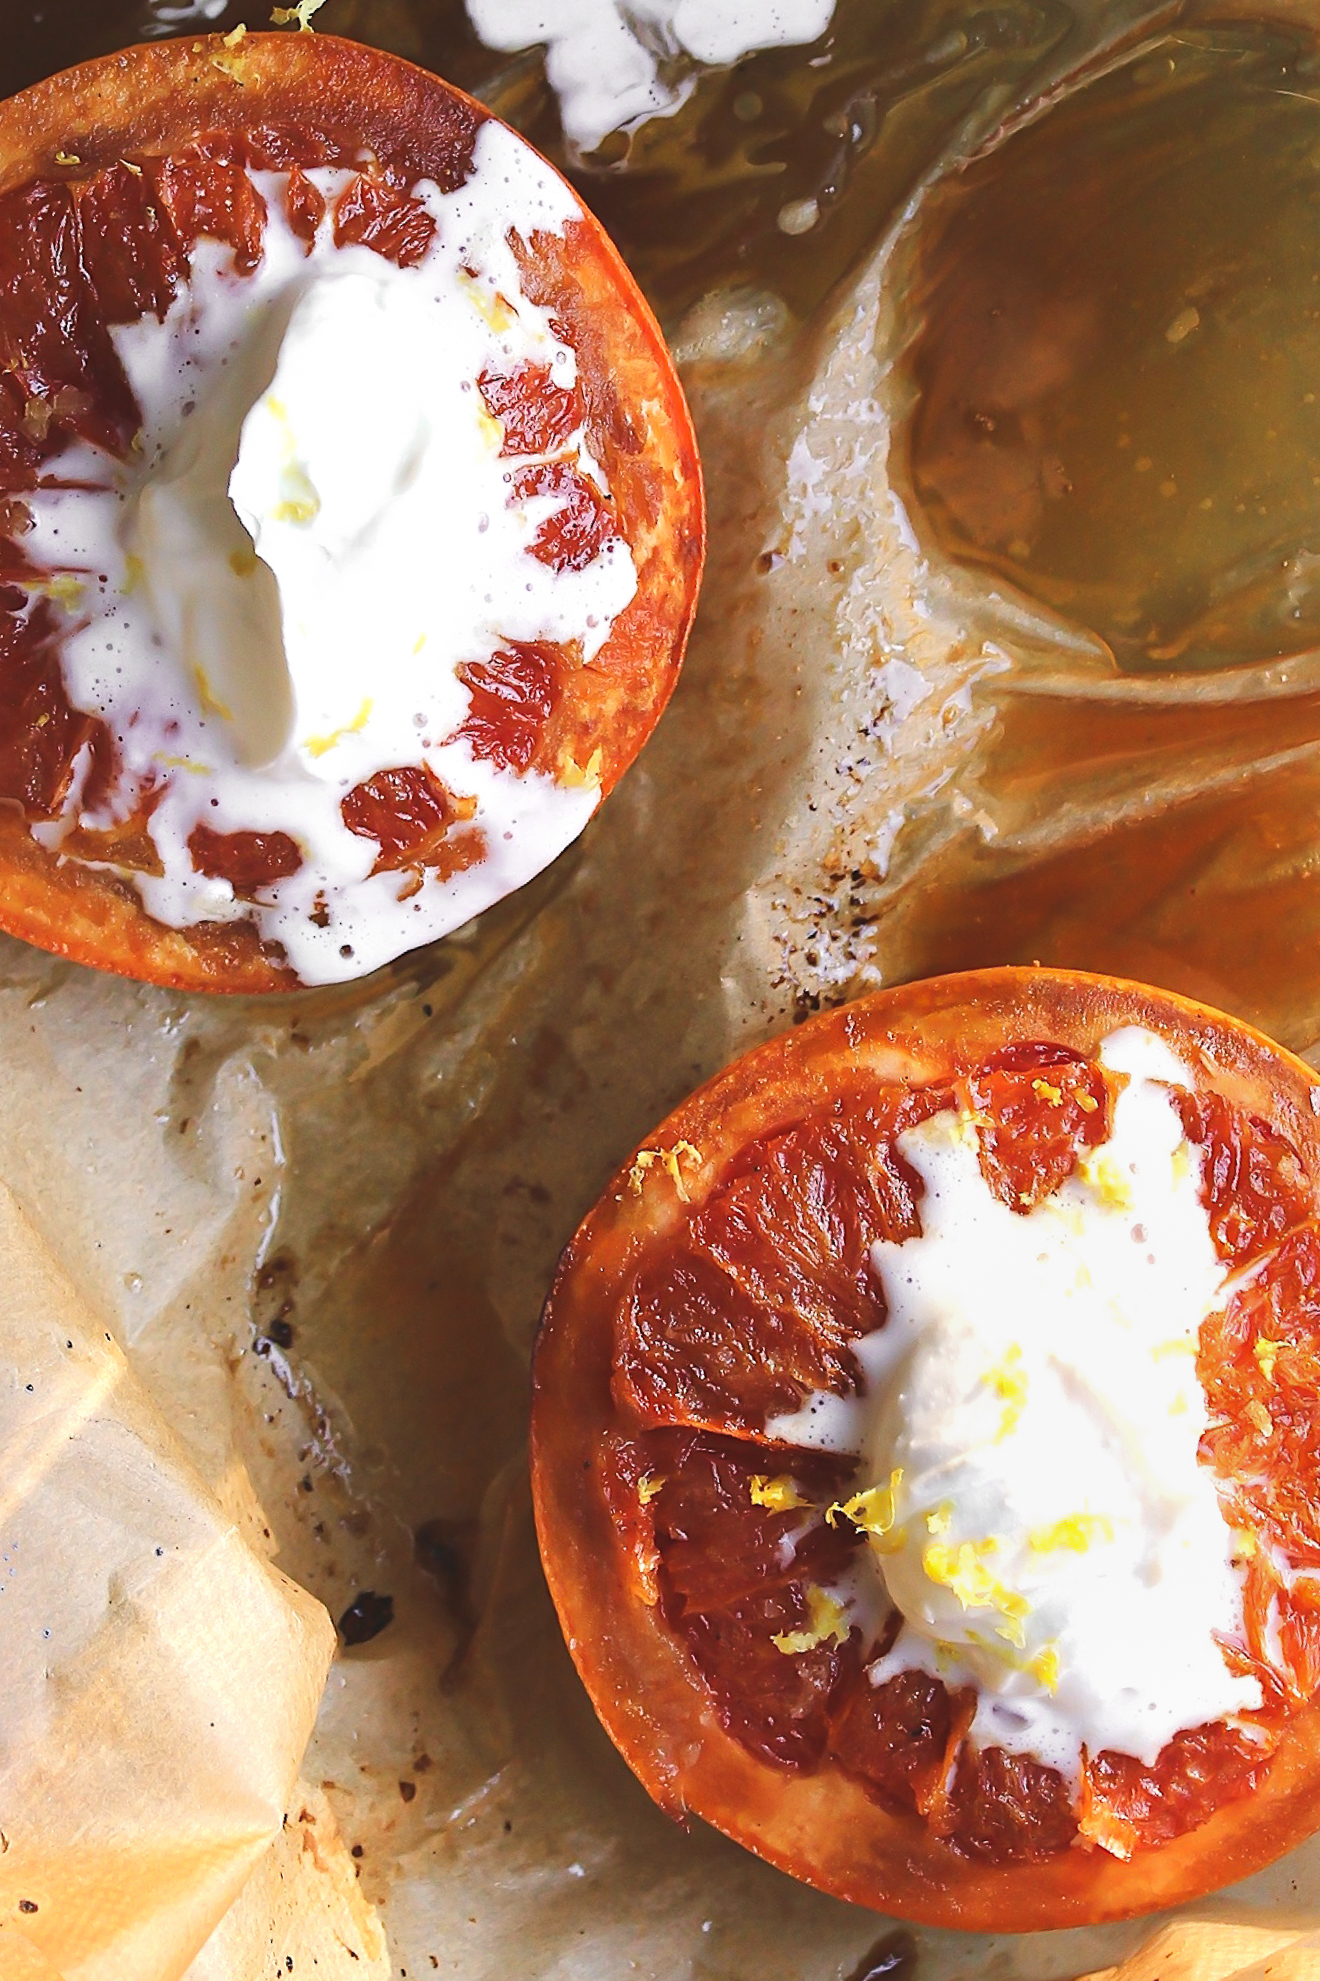 Broiled Grapefruit with Vanilla Ginger Coconut Cream + Sea Salt | A sweet and salty, maple broiled grapefruit with vegan coconut cream and a touch of sea salt. A beautiful, wintry, unfussy, baked grapefruit dessert. #broiledgraperfruit #bakedgrapefruit